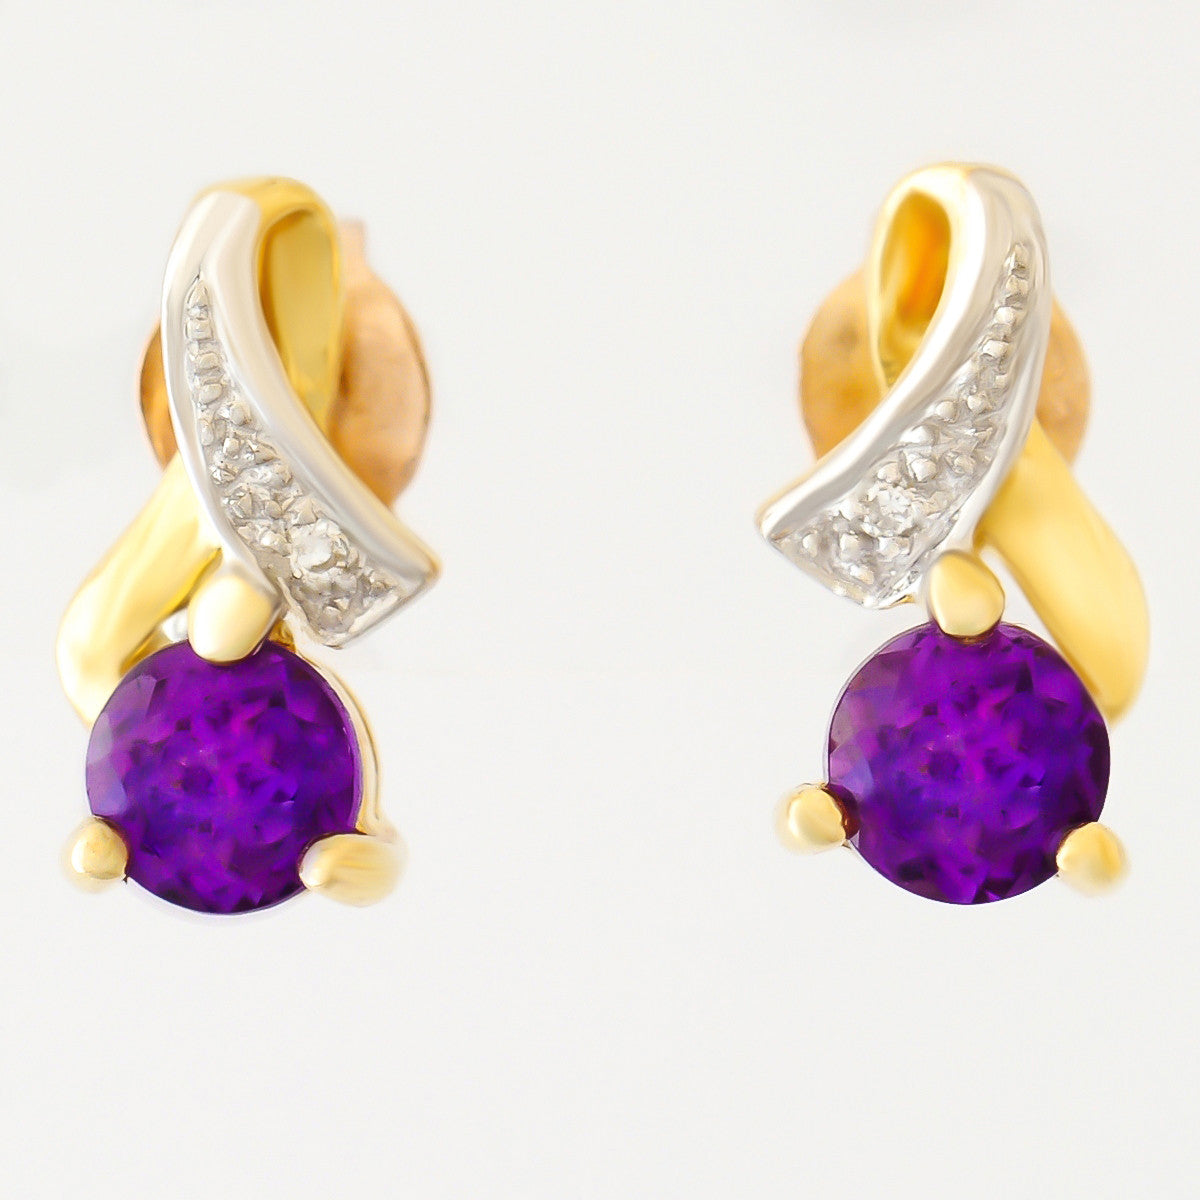 9K SOLID GOLD 0.92CT AMETHYST AND DIAMOND STUD EARRINGS.